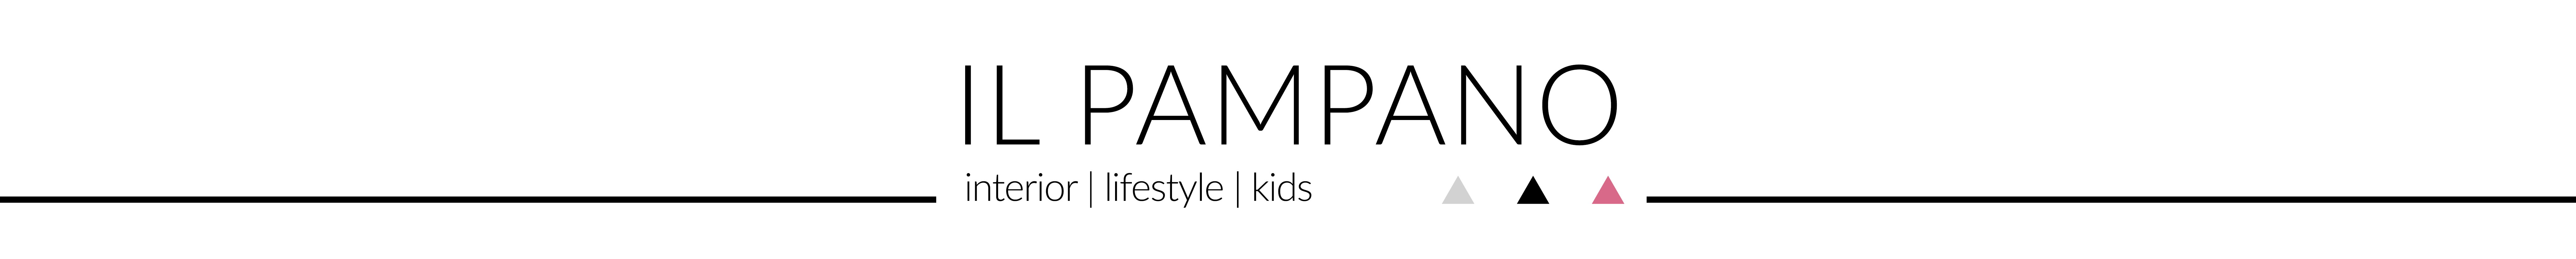 Il Pampano |kids| interior|lifestyle|